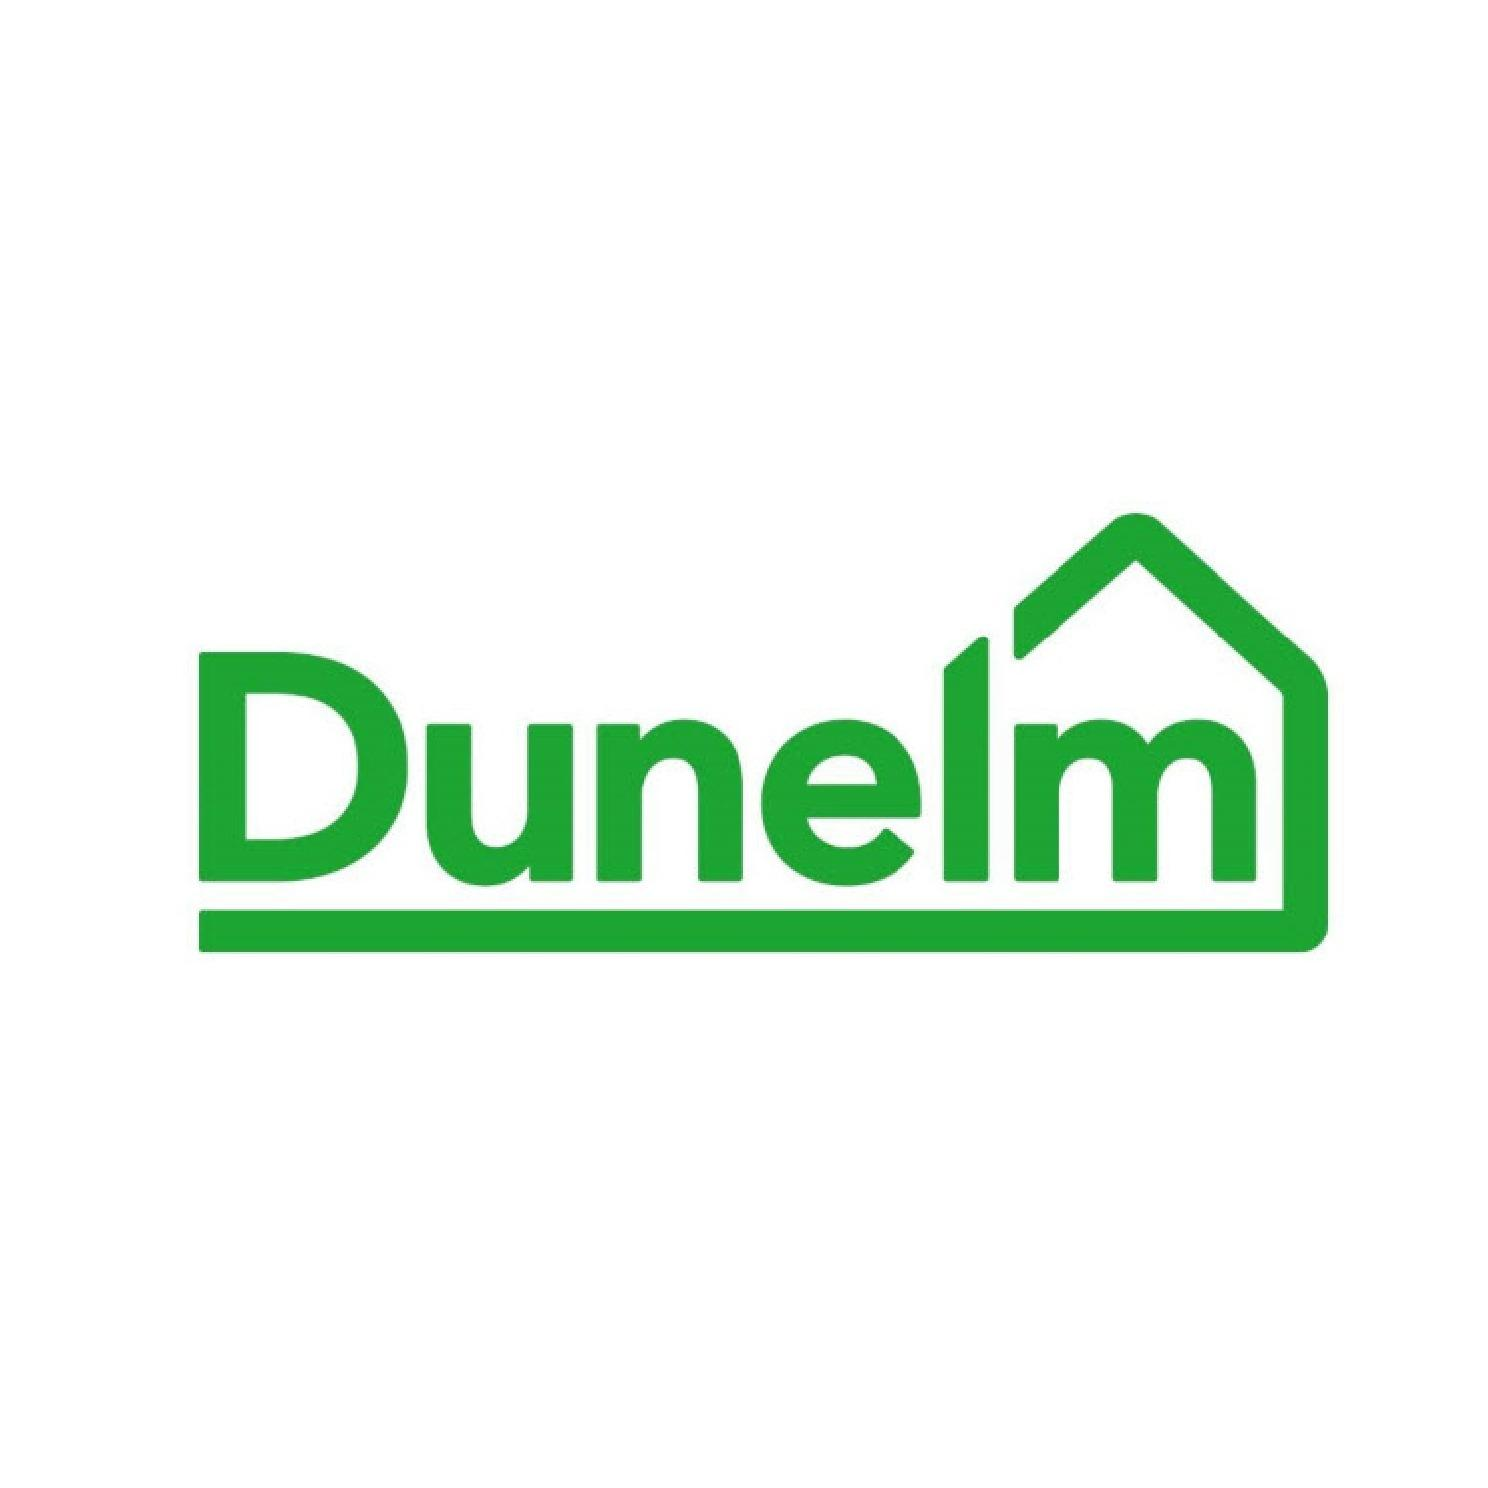 Dunelm - Ashton-under-Lyne, Lancashire OL7 0DN - 01616 679980 | ShowMeLocal.com